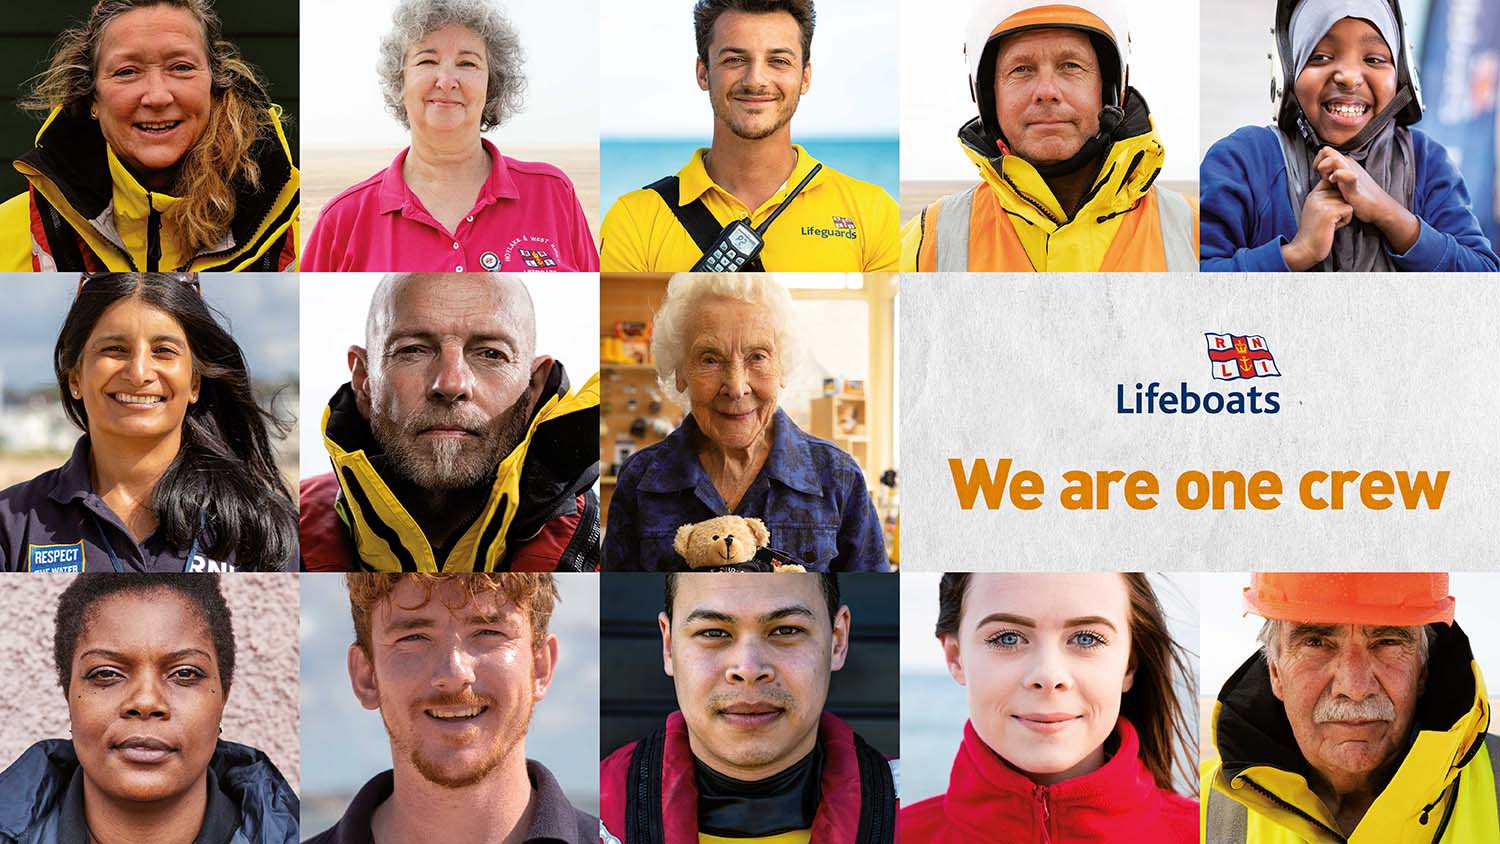 A montage of 12 RNLI people of different races, genders, ages and roles